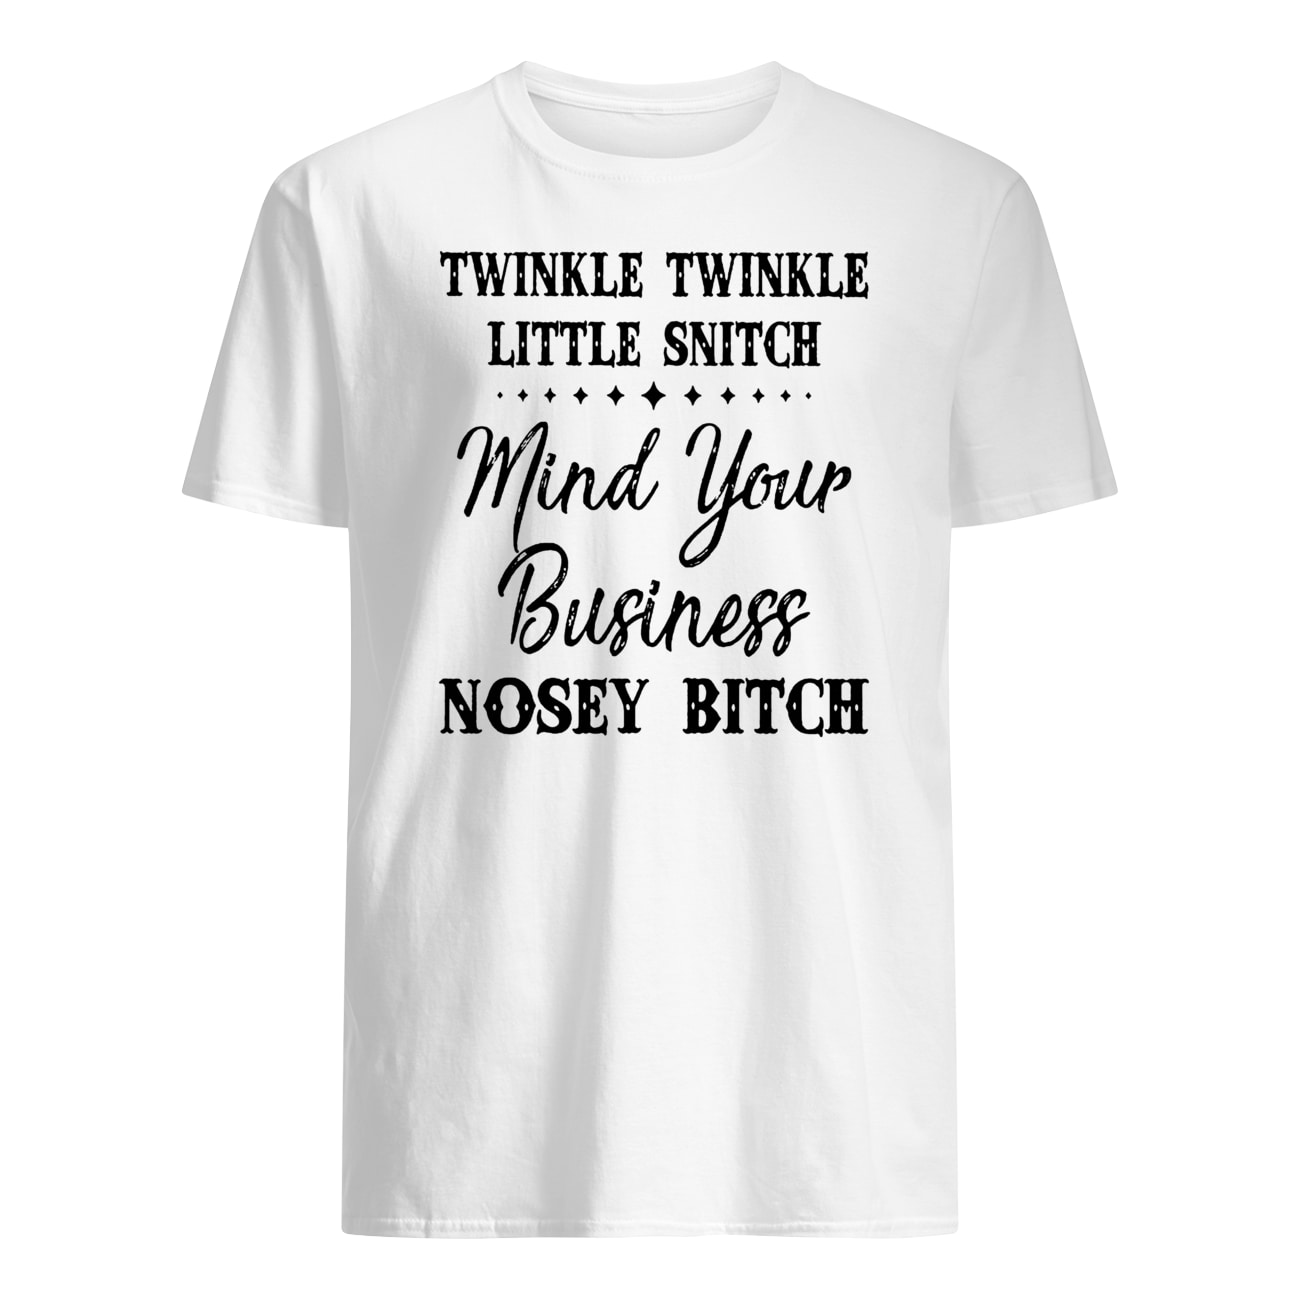 Twinkle twinkle little snitch mind your own business you nosey bitch mens shirt